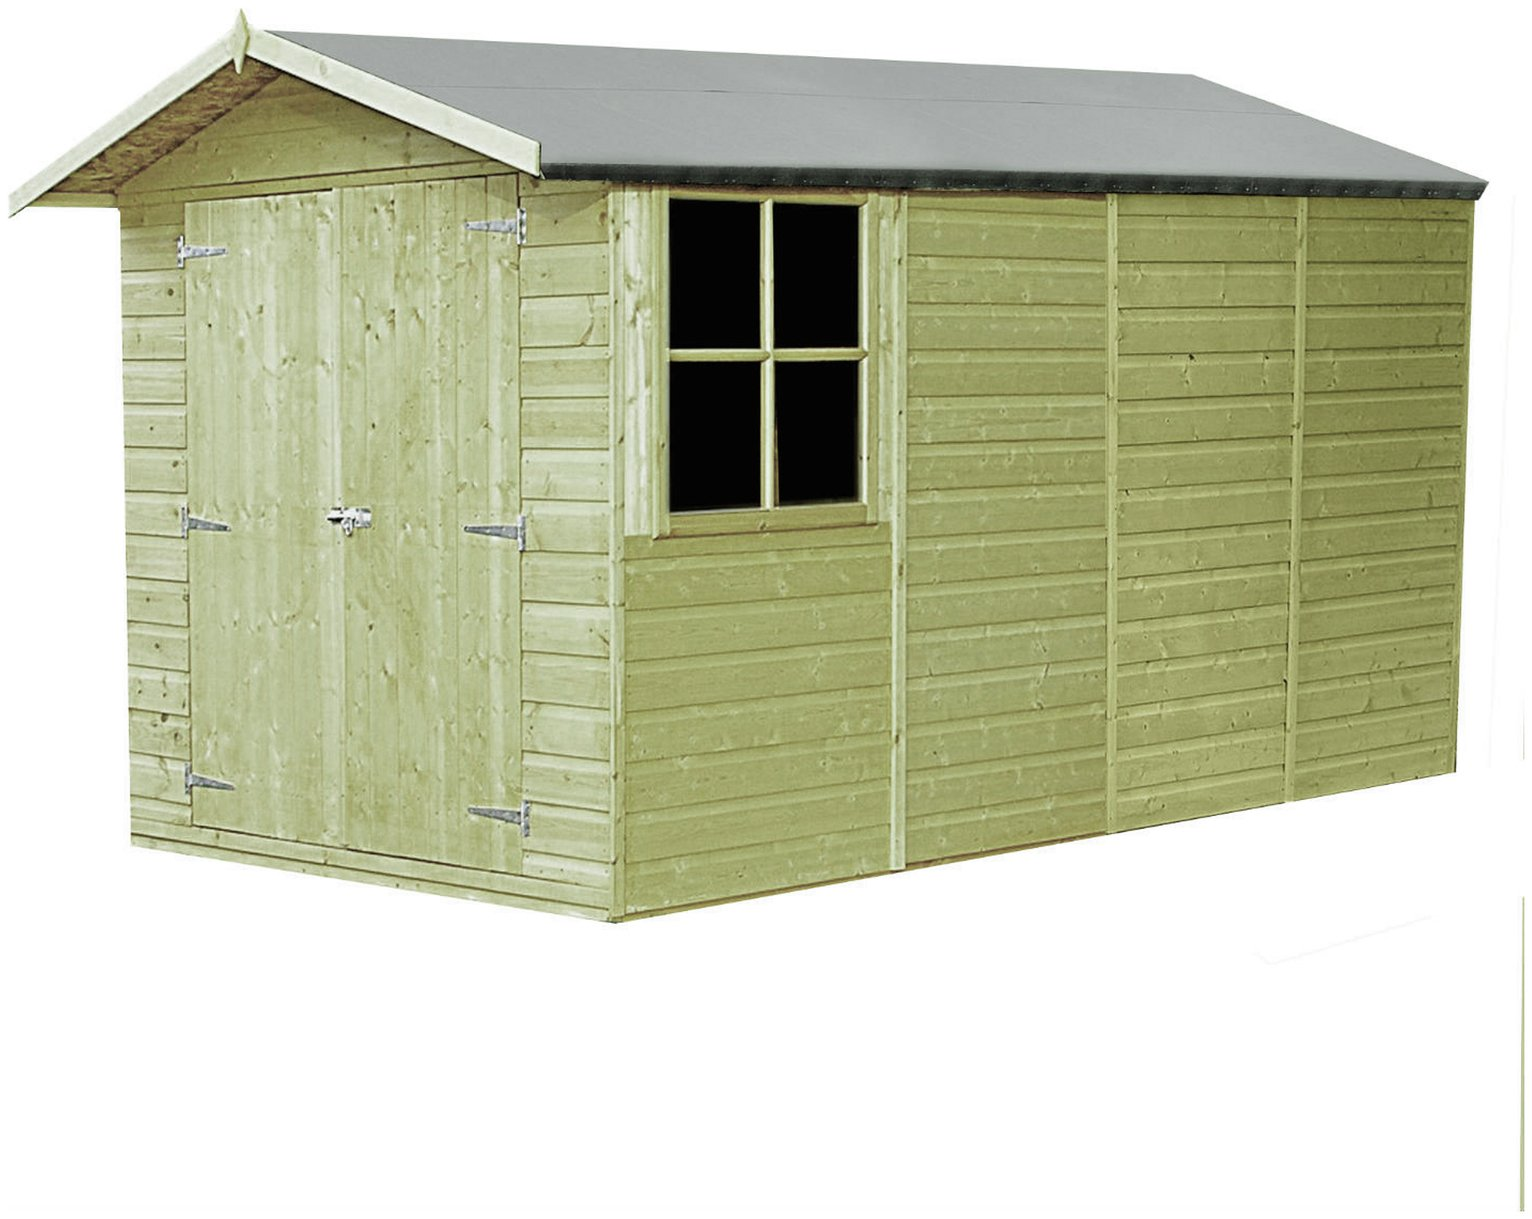 Image of Homewood Pressure Treated Apex Shed 13 x 7ft